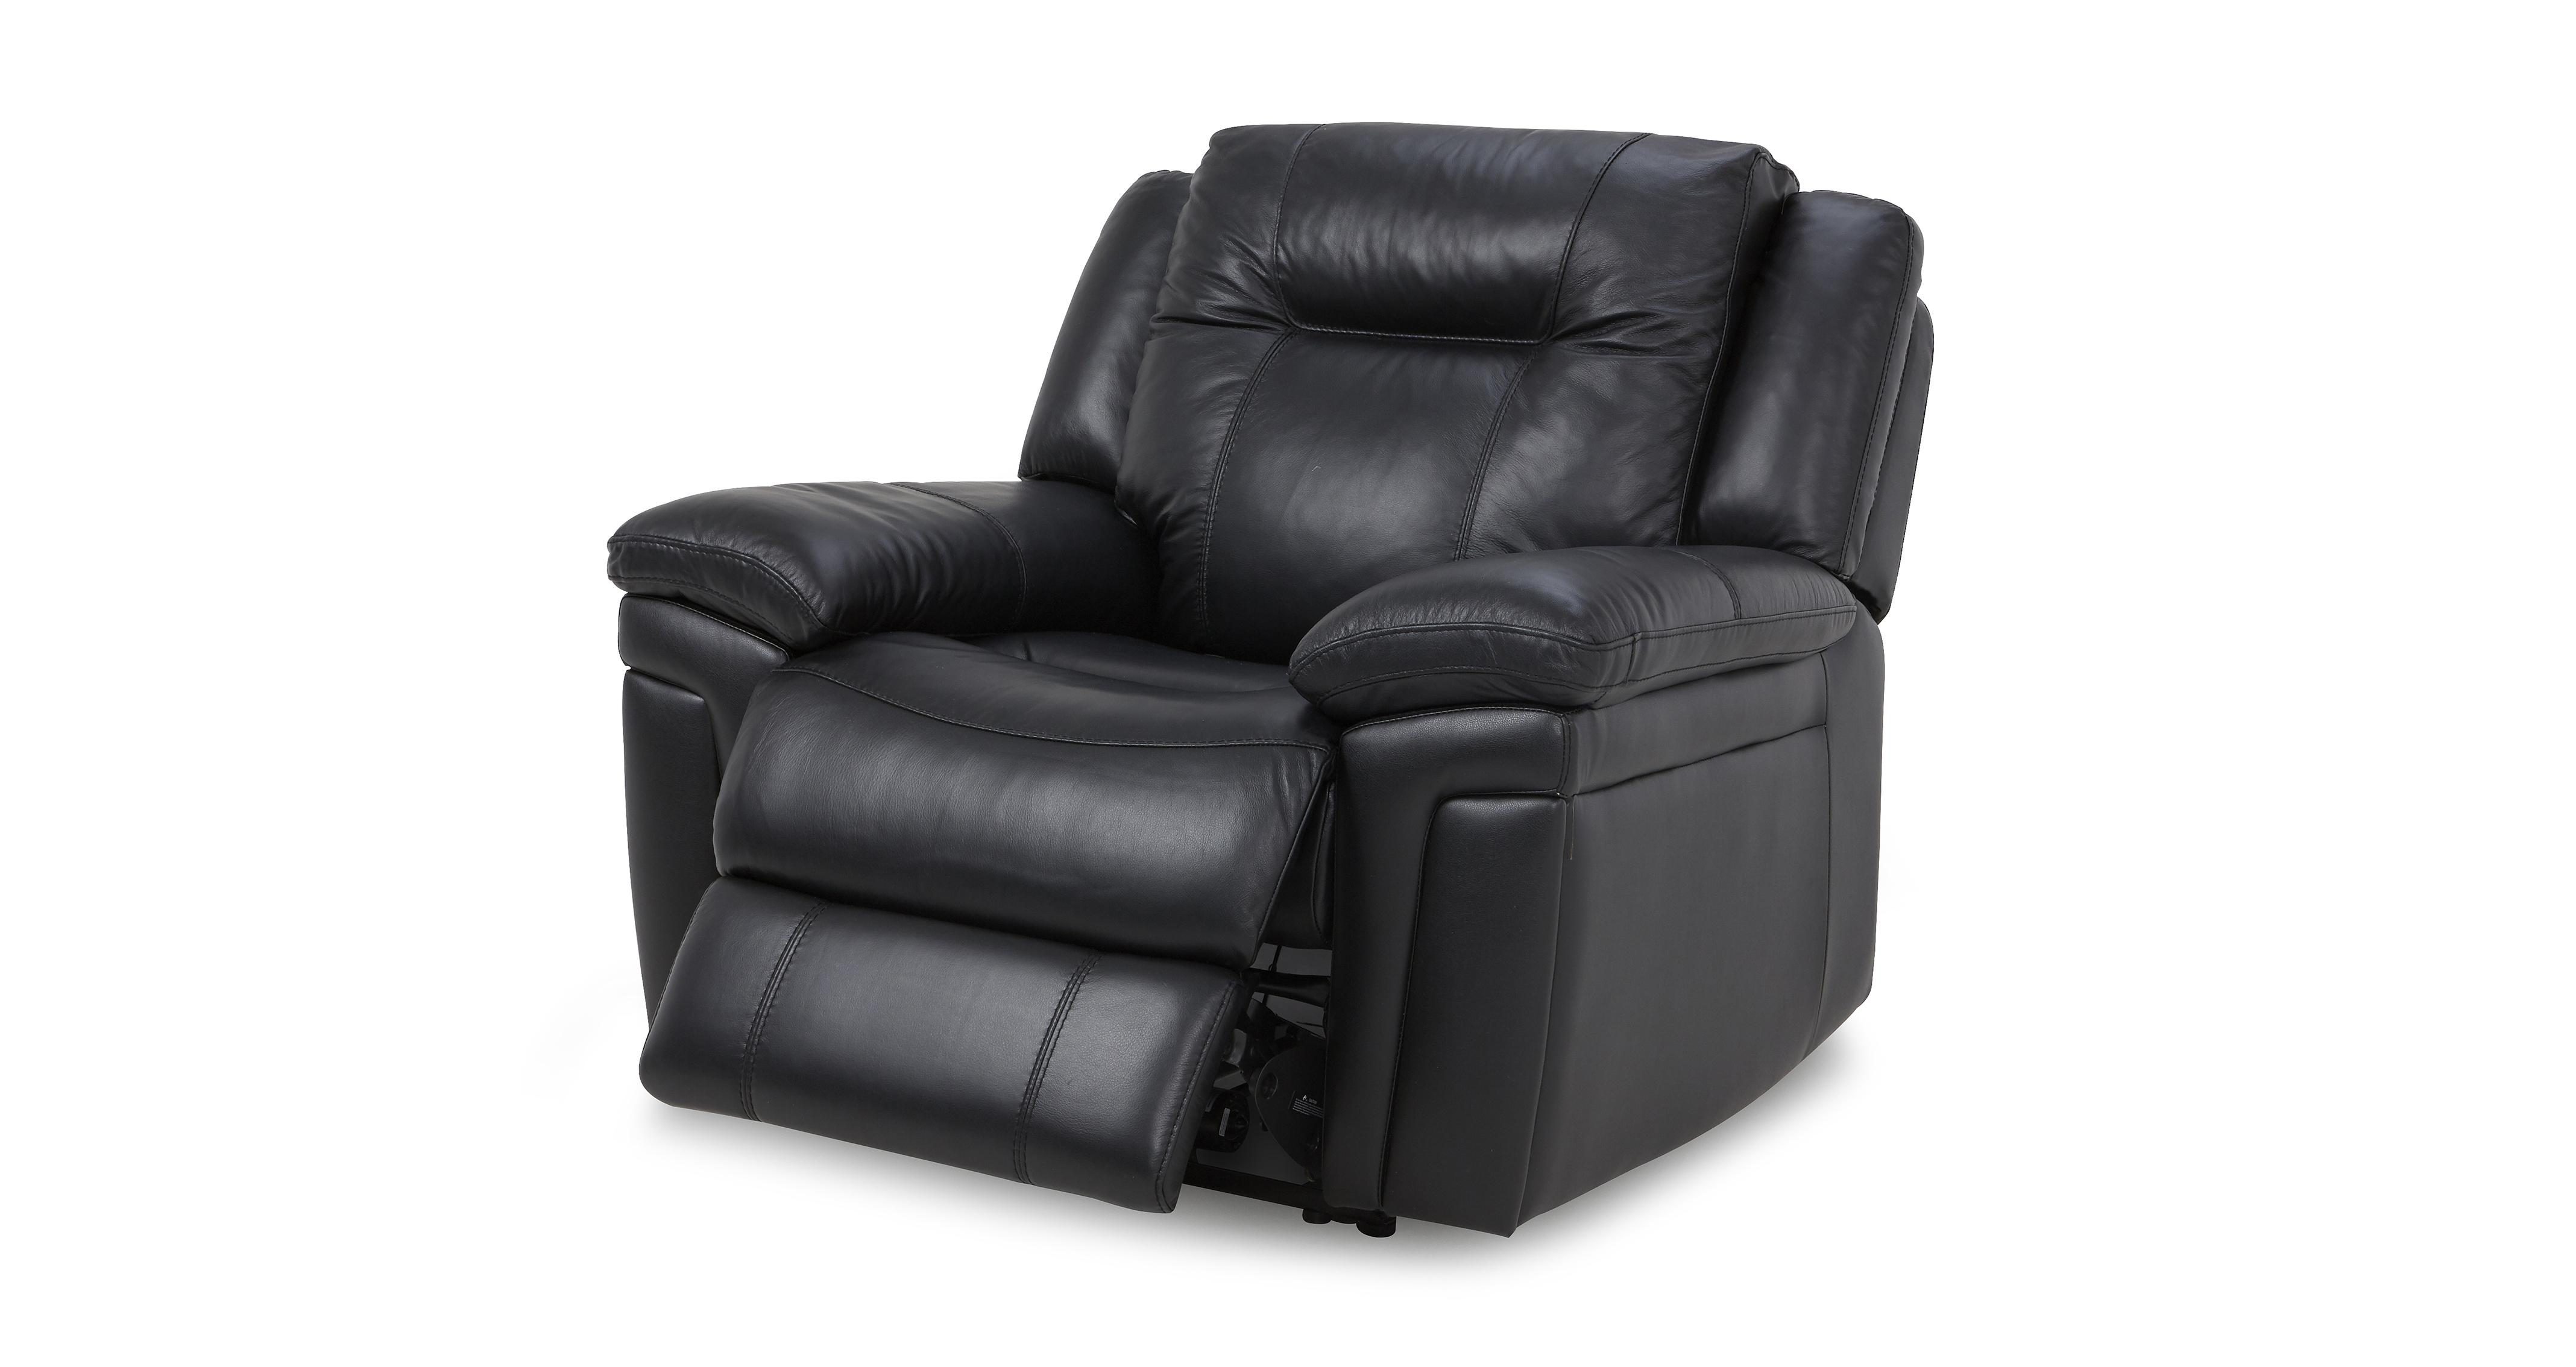 Diversity Leather And Leather Look Electric Recliner Chair Premium DFS